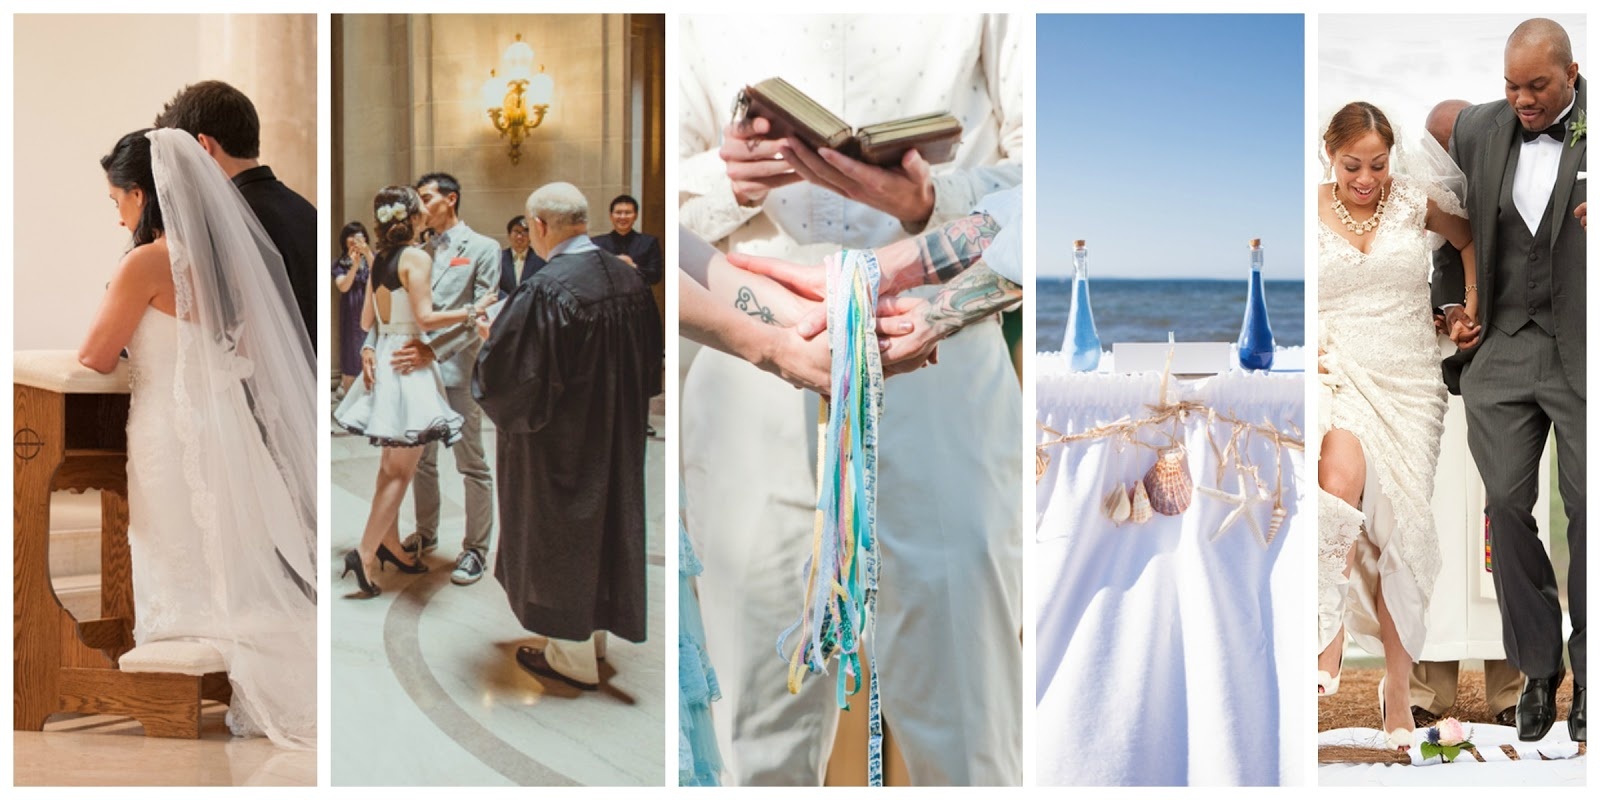 Wedding Ceremony Gifts: Savvy Deets Bridal: {Advice} Which Wedding Ceremony Is